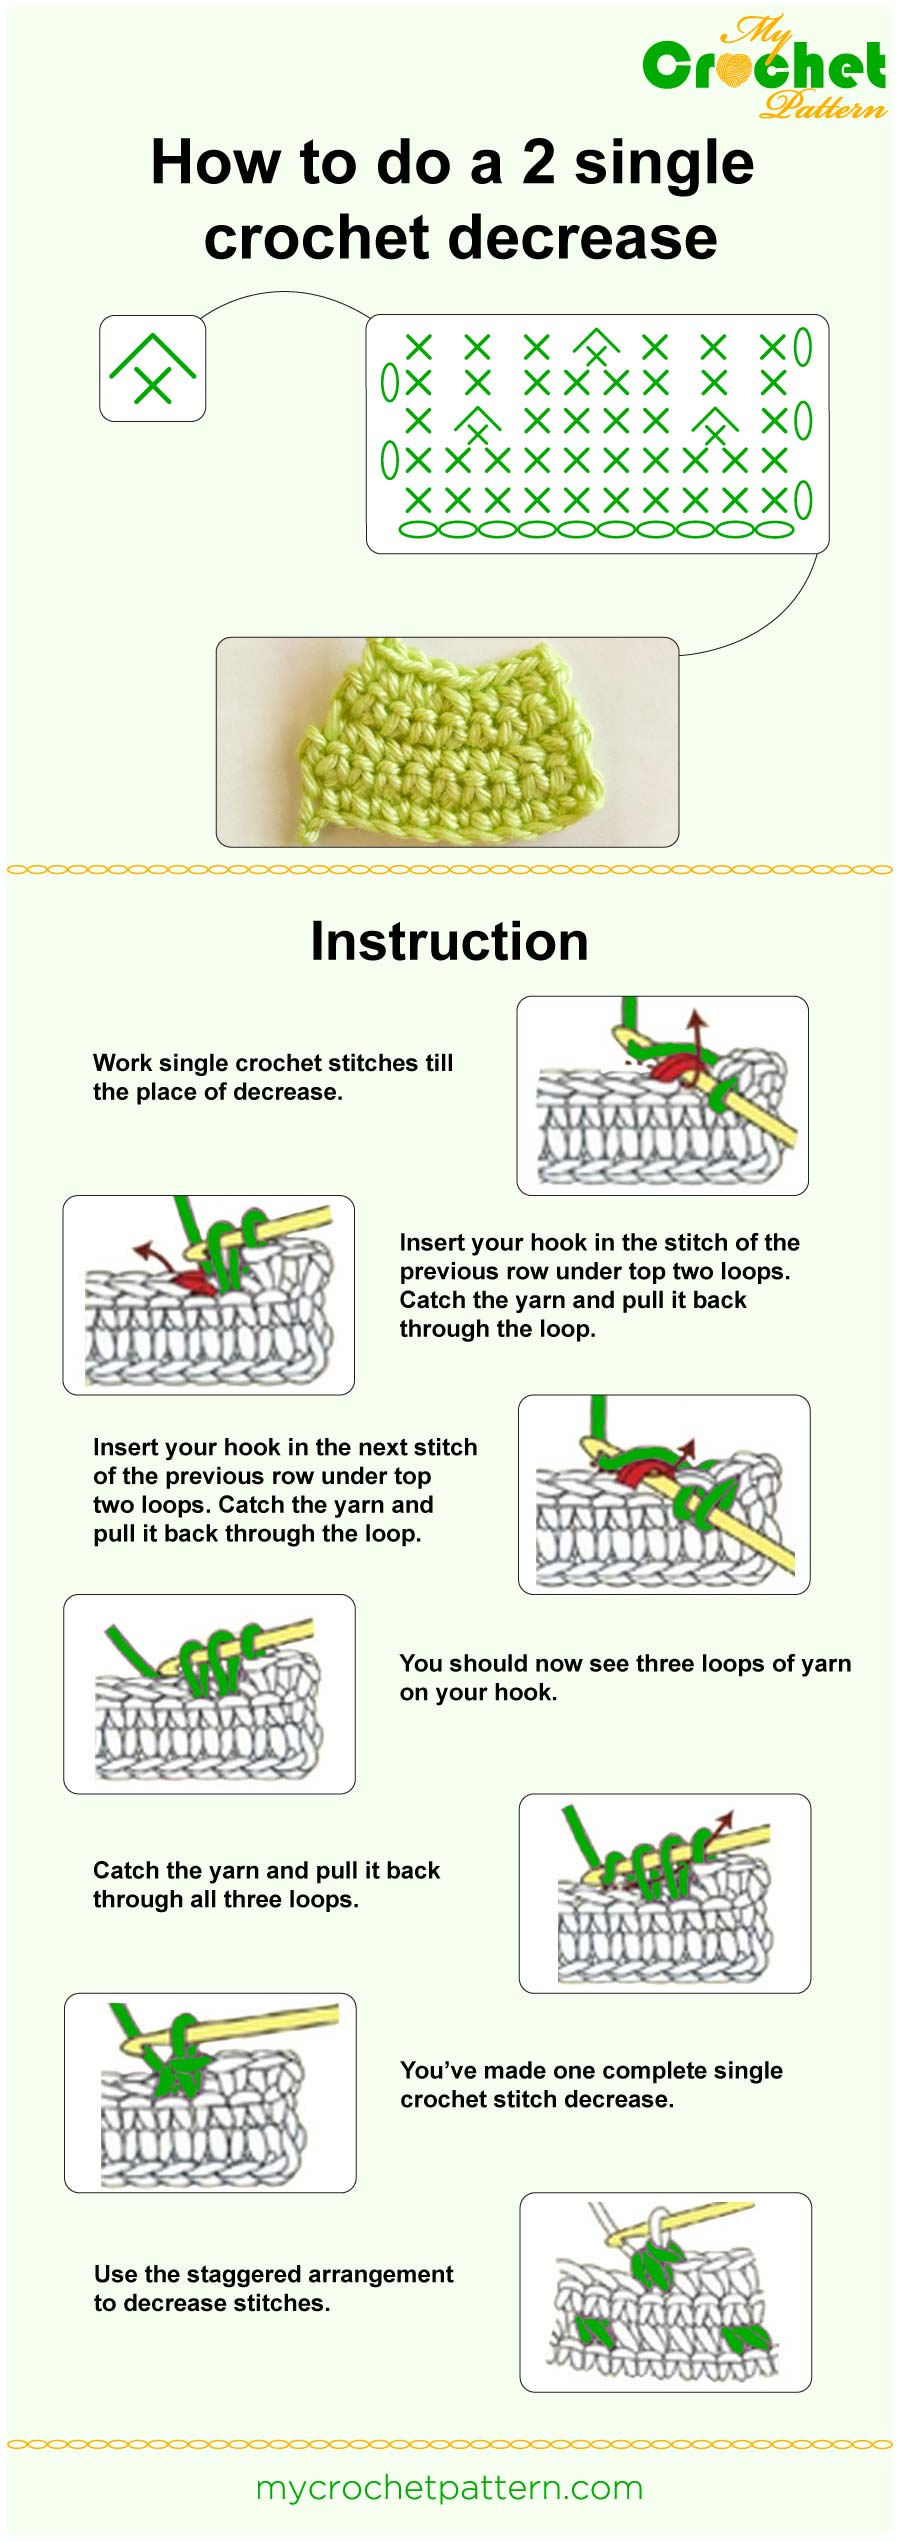 how to do a 2 sc decrease - infographic